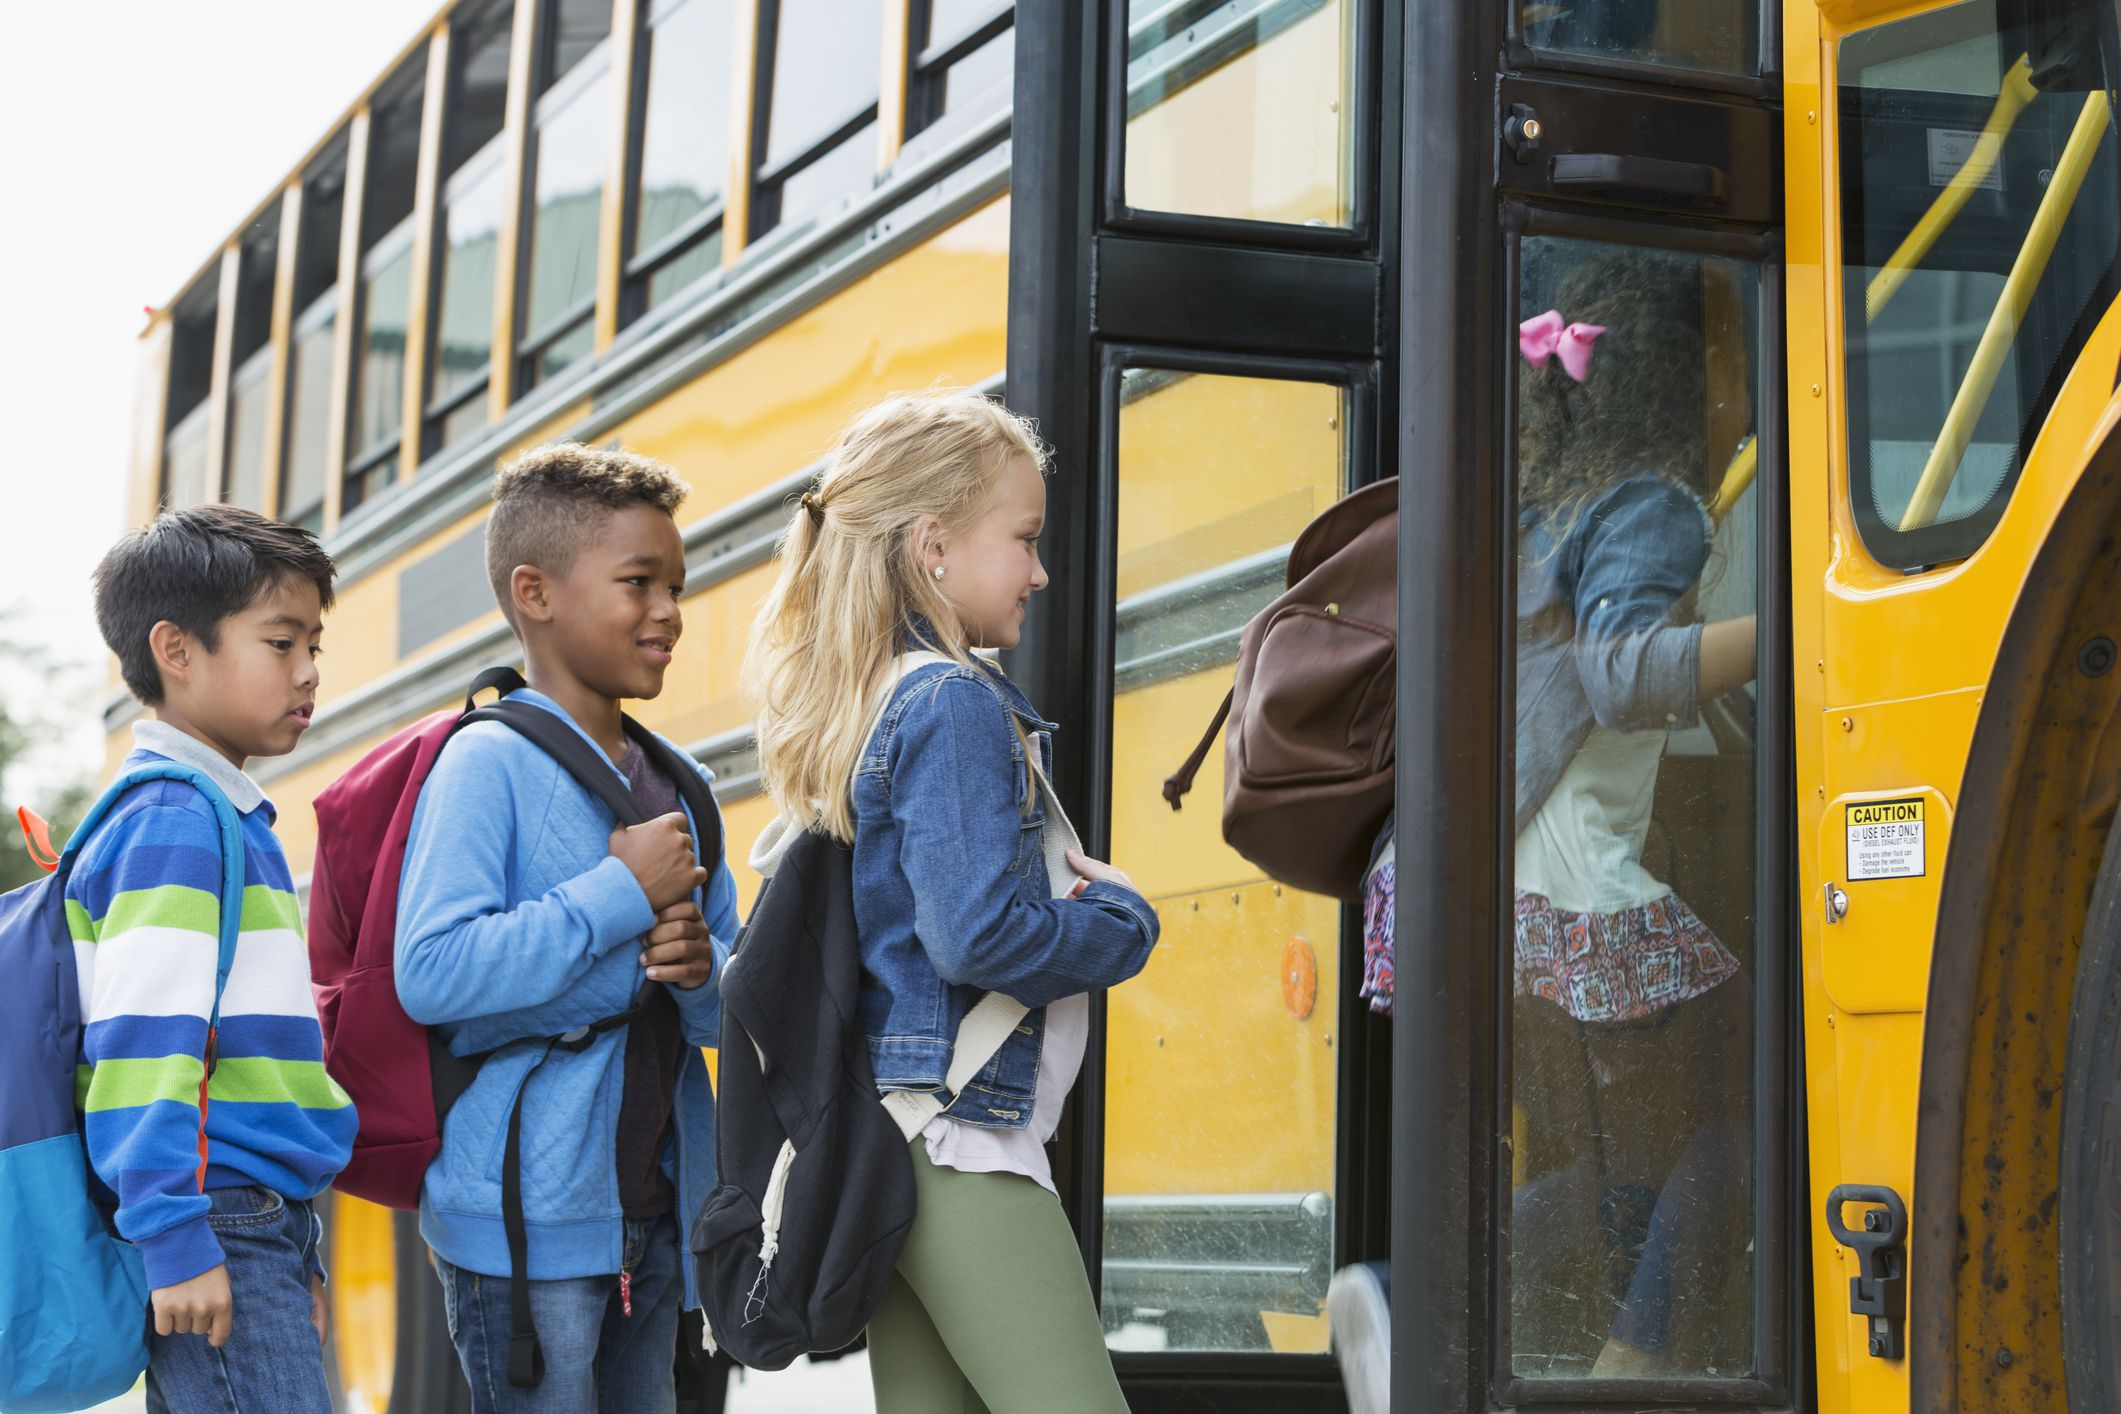 6 Ways Elementary School Teachers Can Welcome Students Back to School